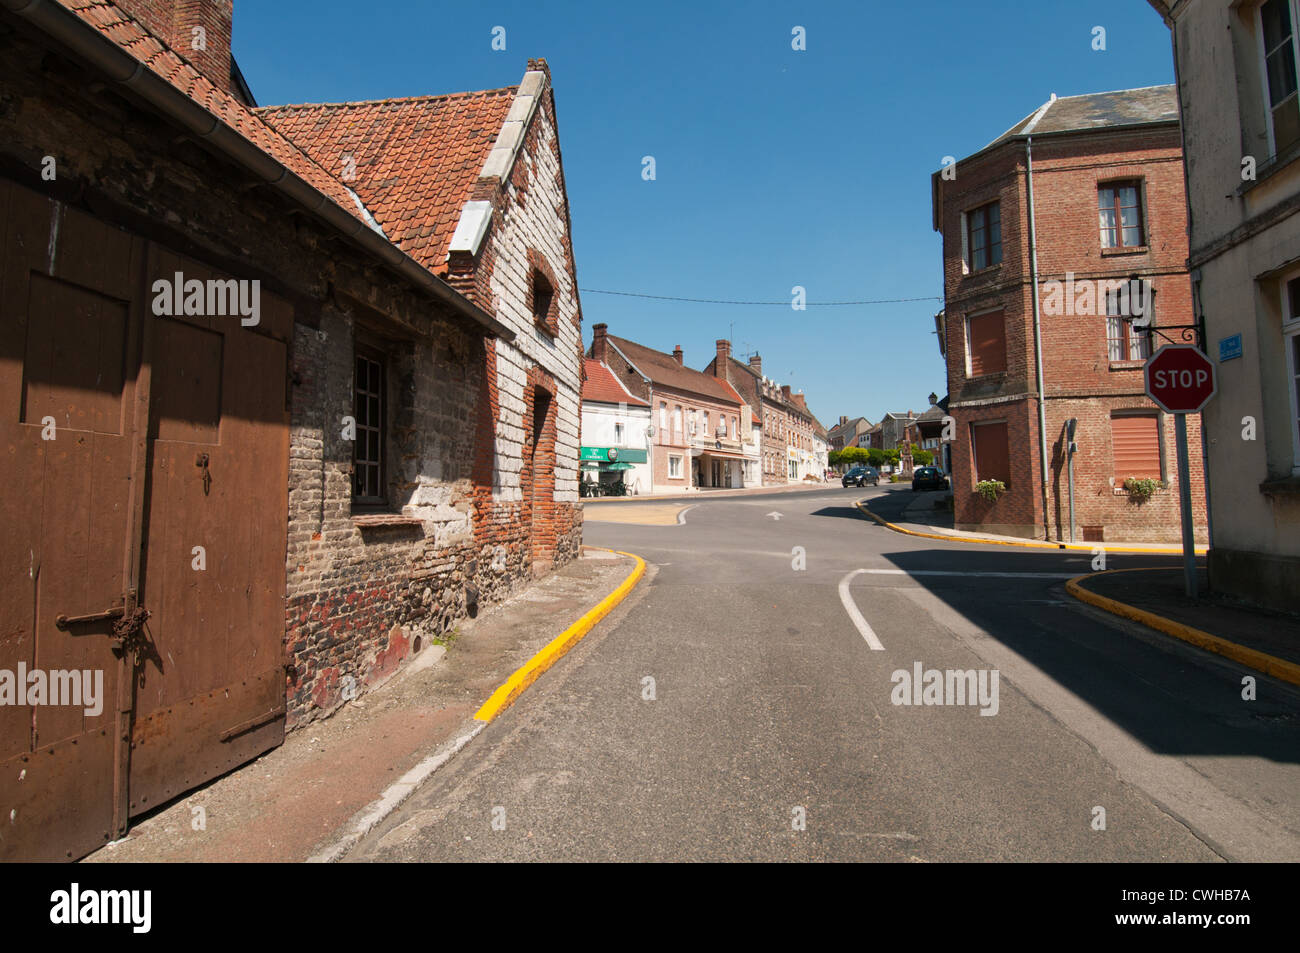 picardy village of noyelles sur mer france stock photo 50169150 alamy. Black Bedroom Furniture Sets. Home Design Ideas